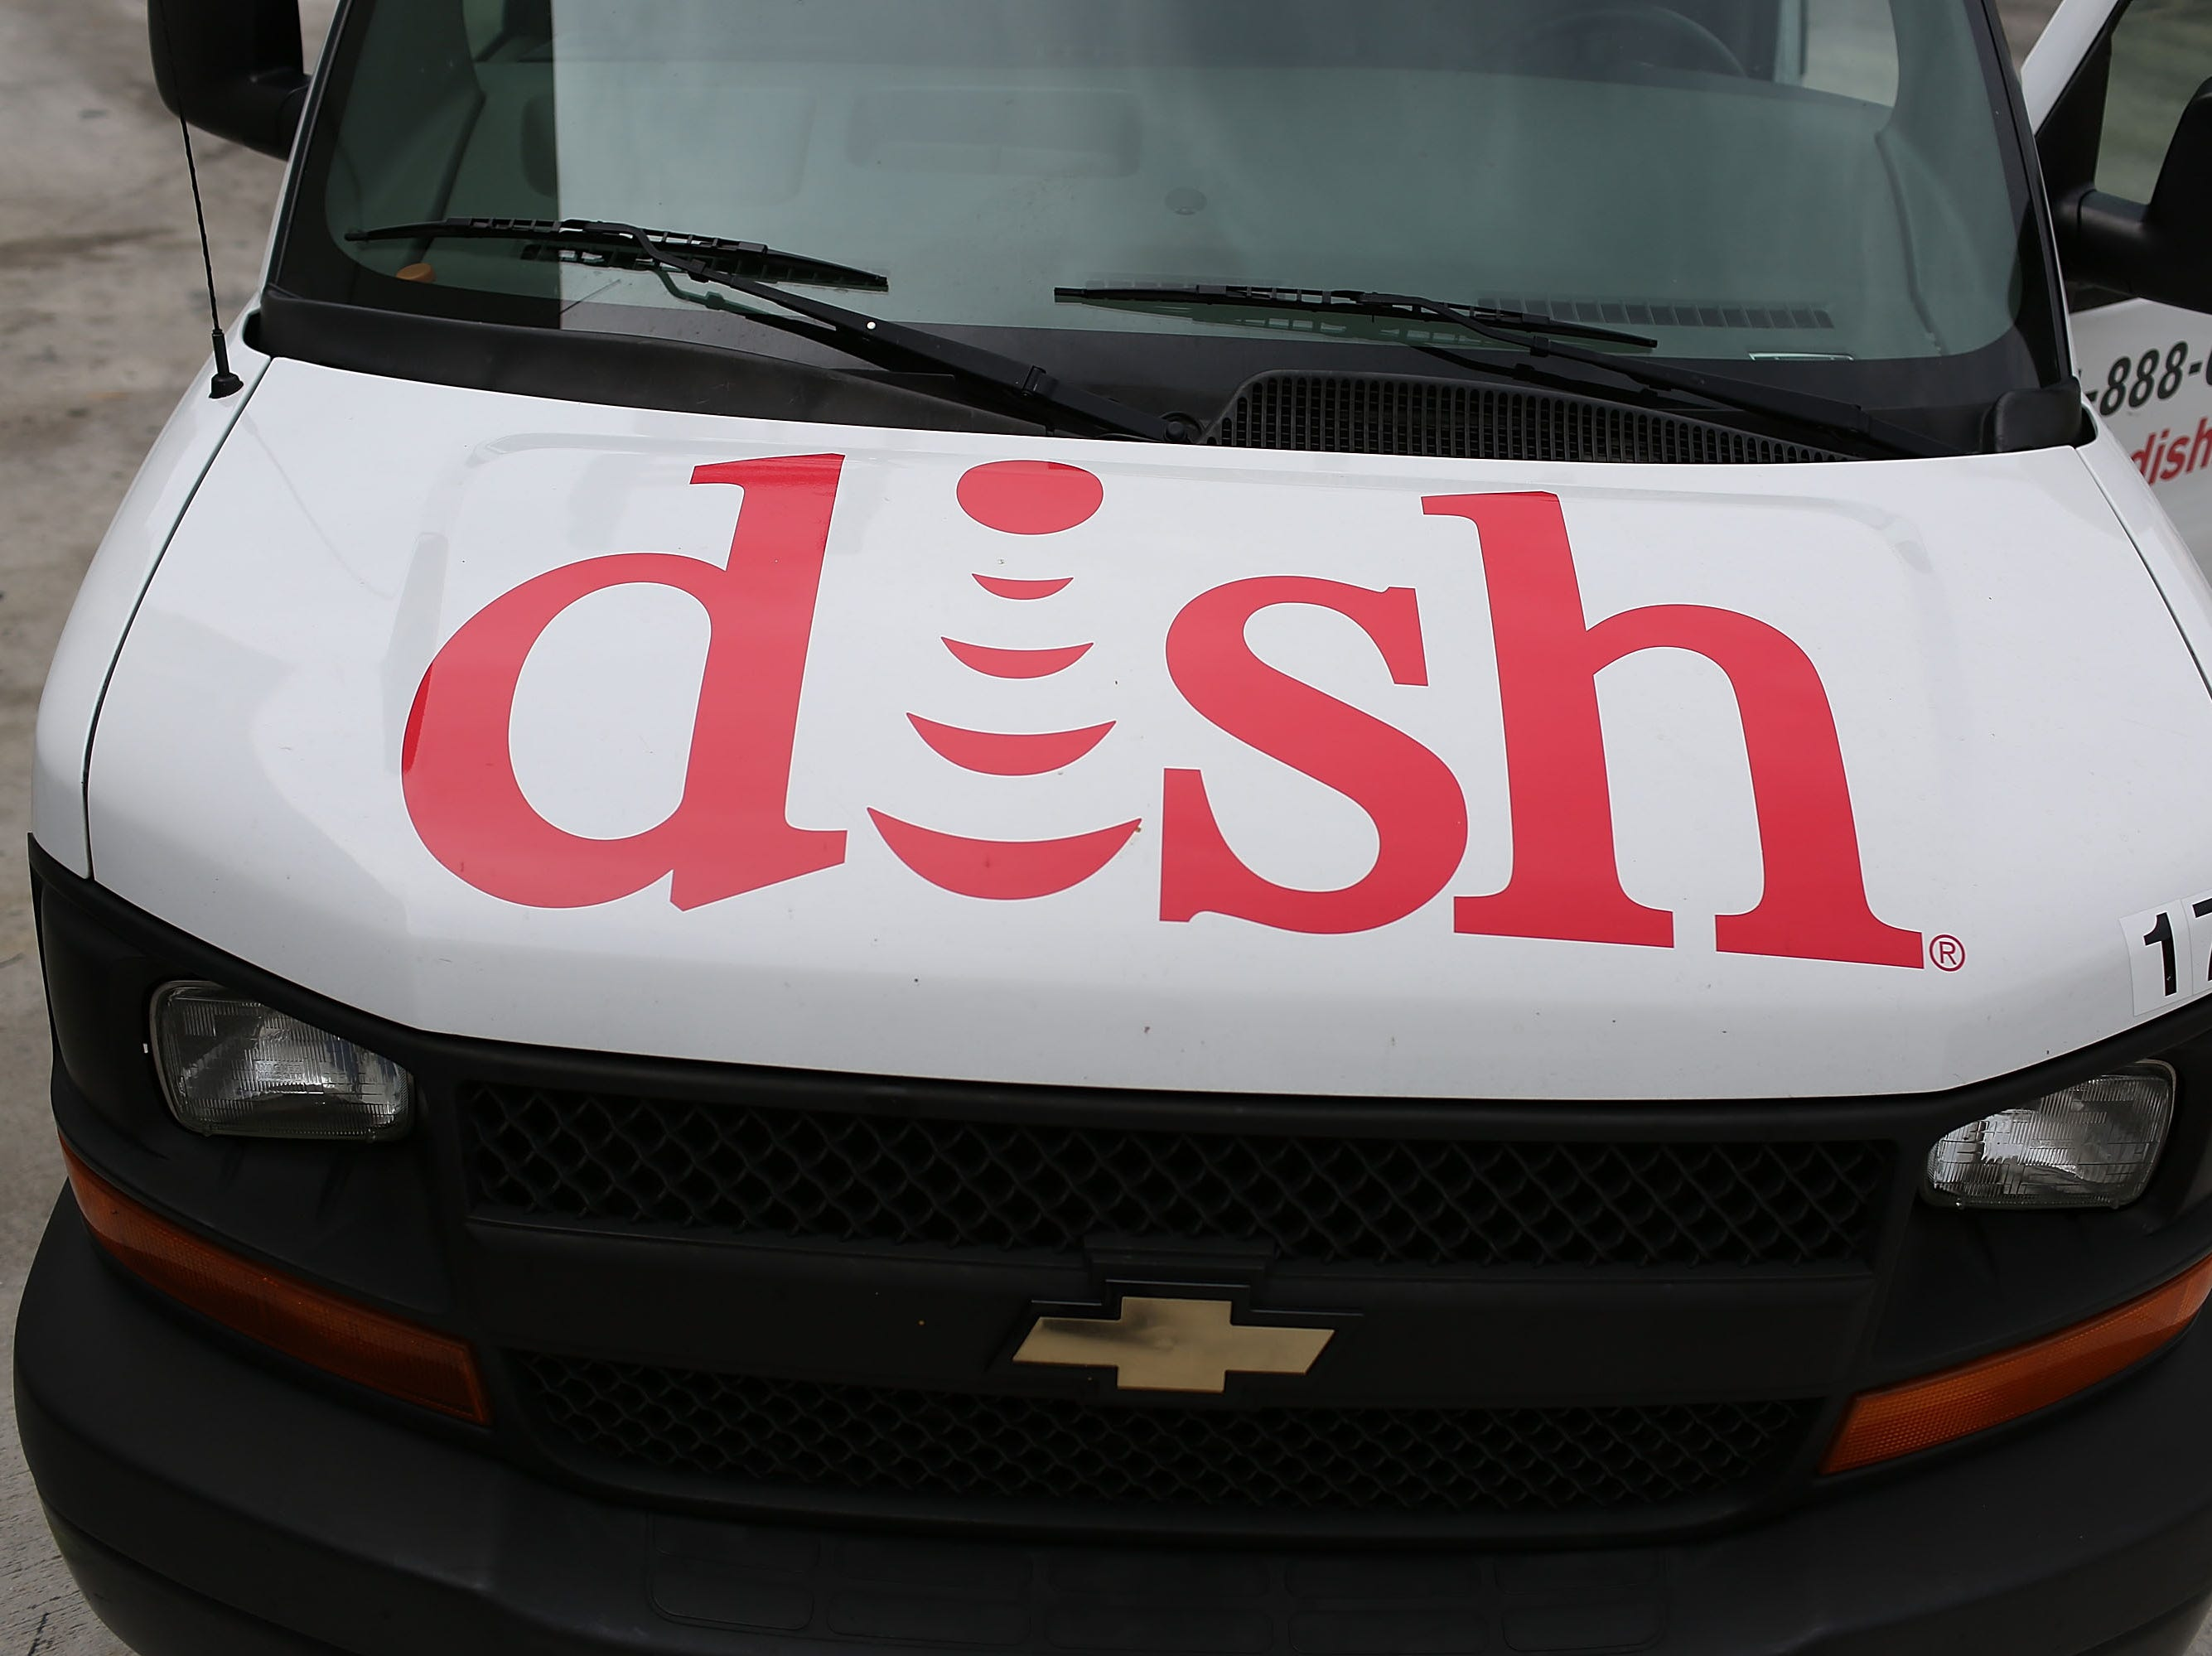 Dish Network, hiring 660. The satellite-television company is adding jobs from account managers to installers. More info: careers.dish.com.